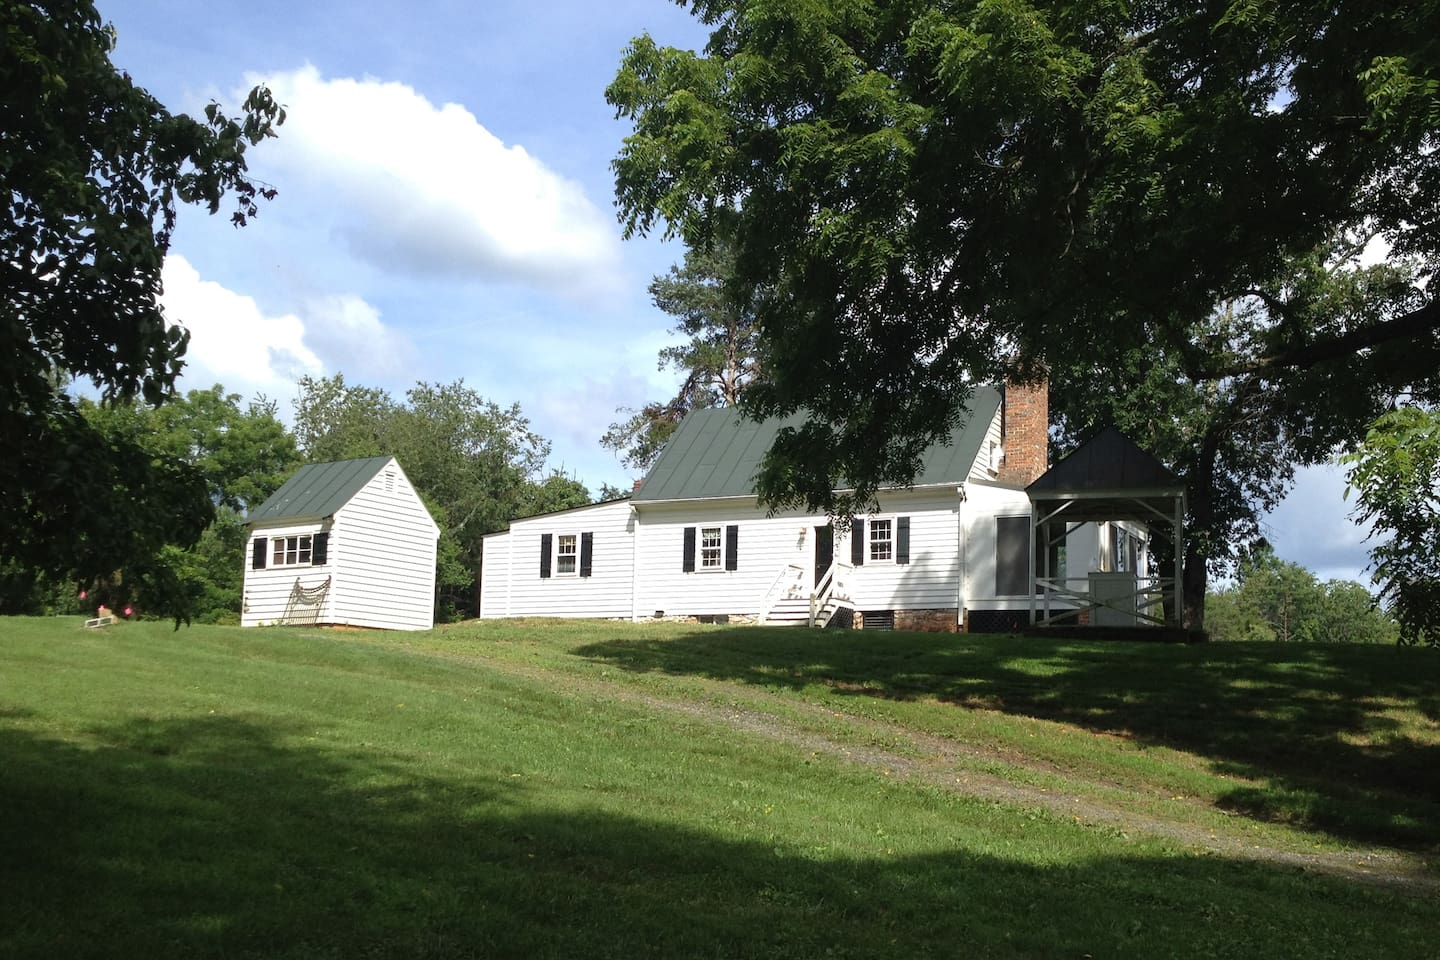 1790  Virginia Cottage, 6/10 mile off main road, set among 650 acres in conservation easement